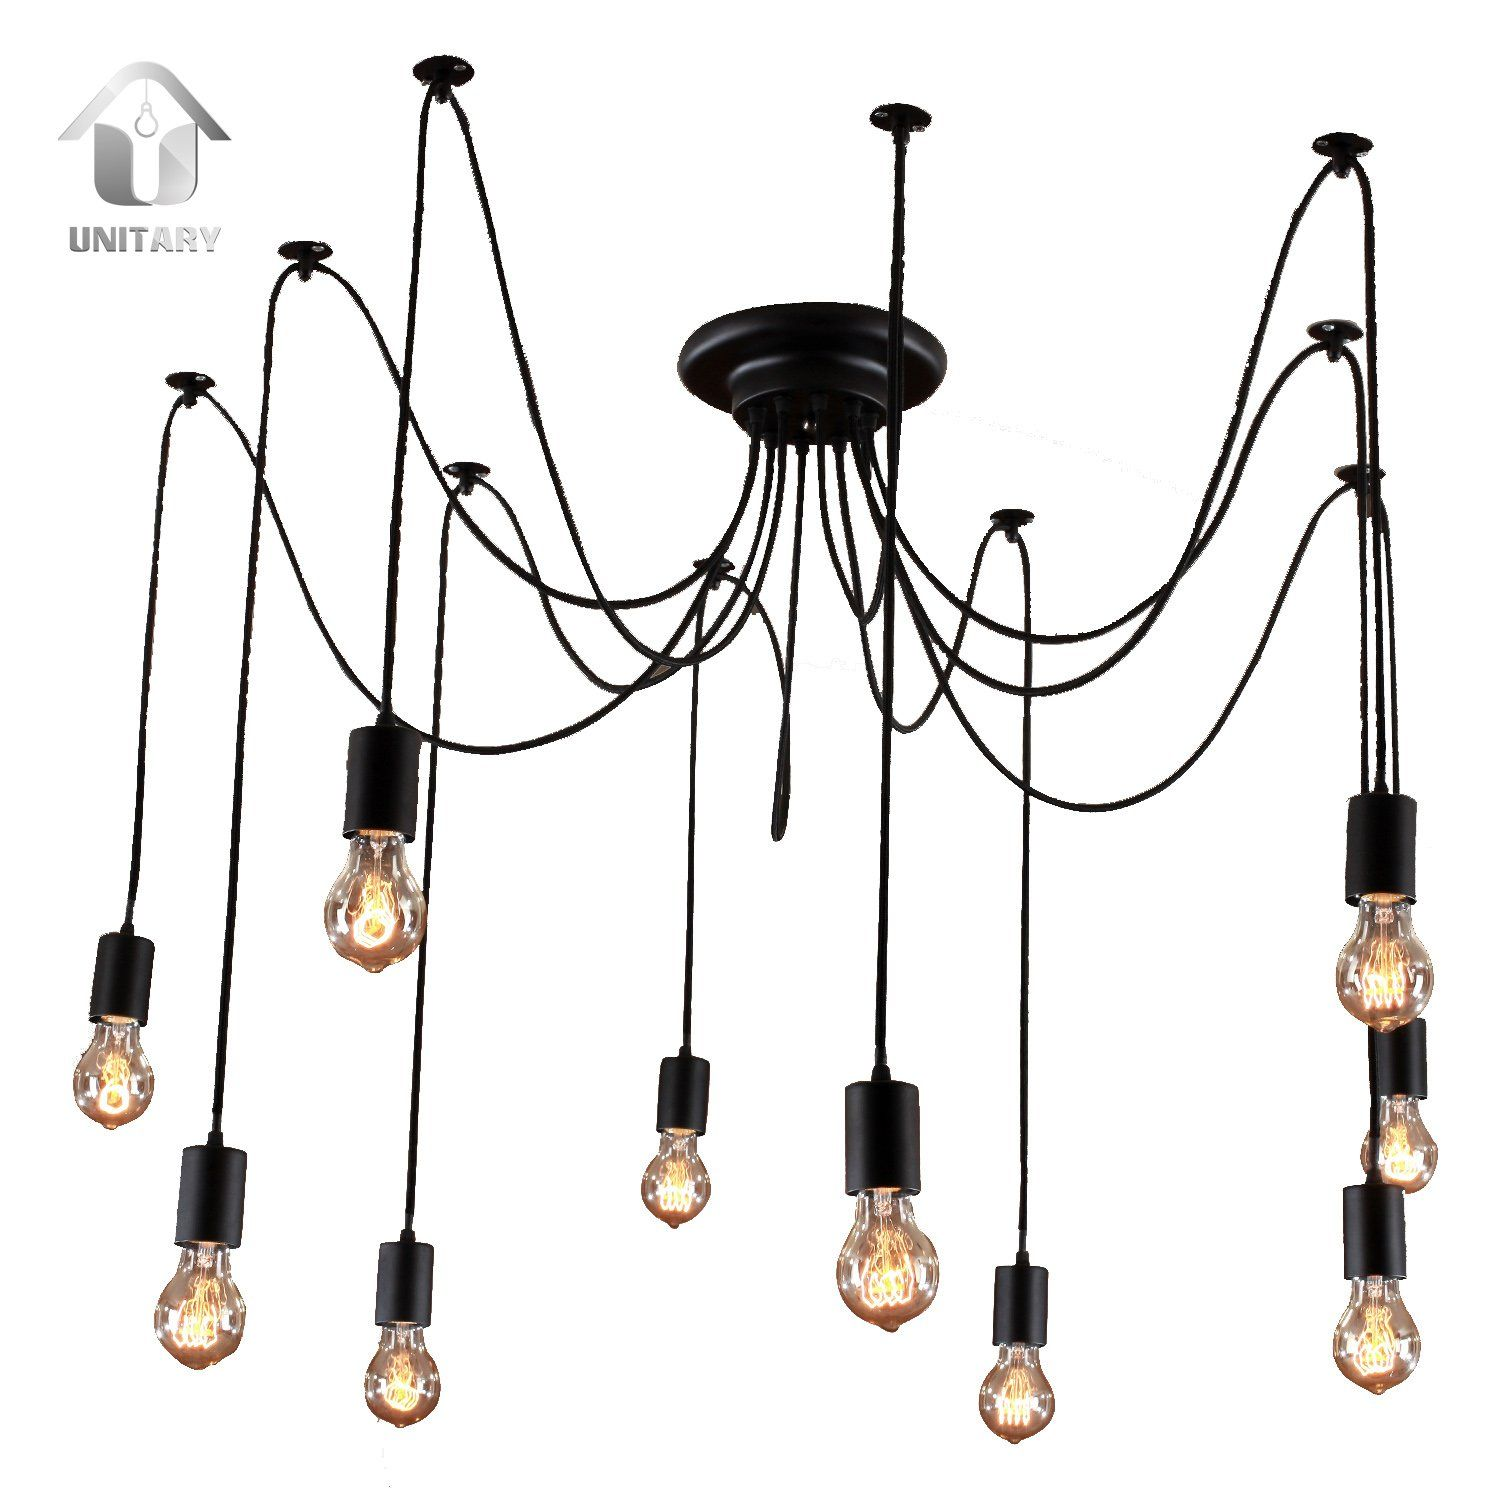 Unitary Brand Antique Large Barn Chandelier Max 400w With